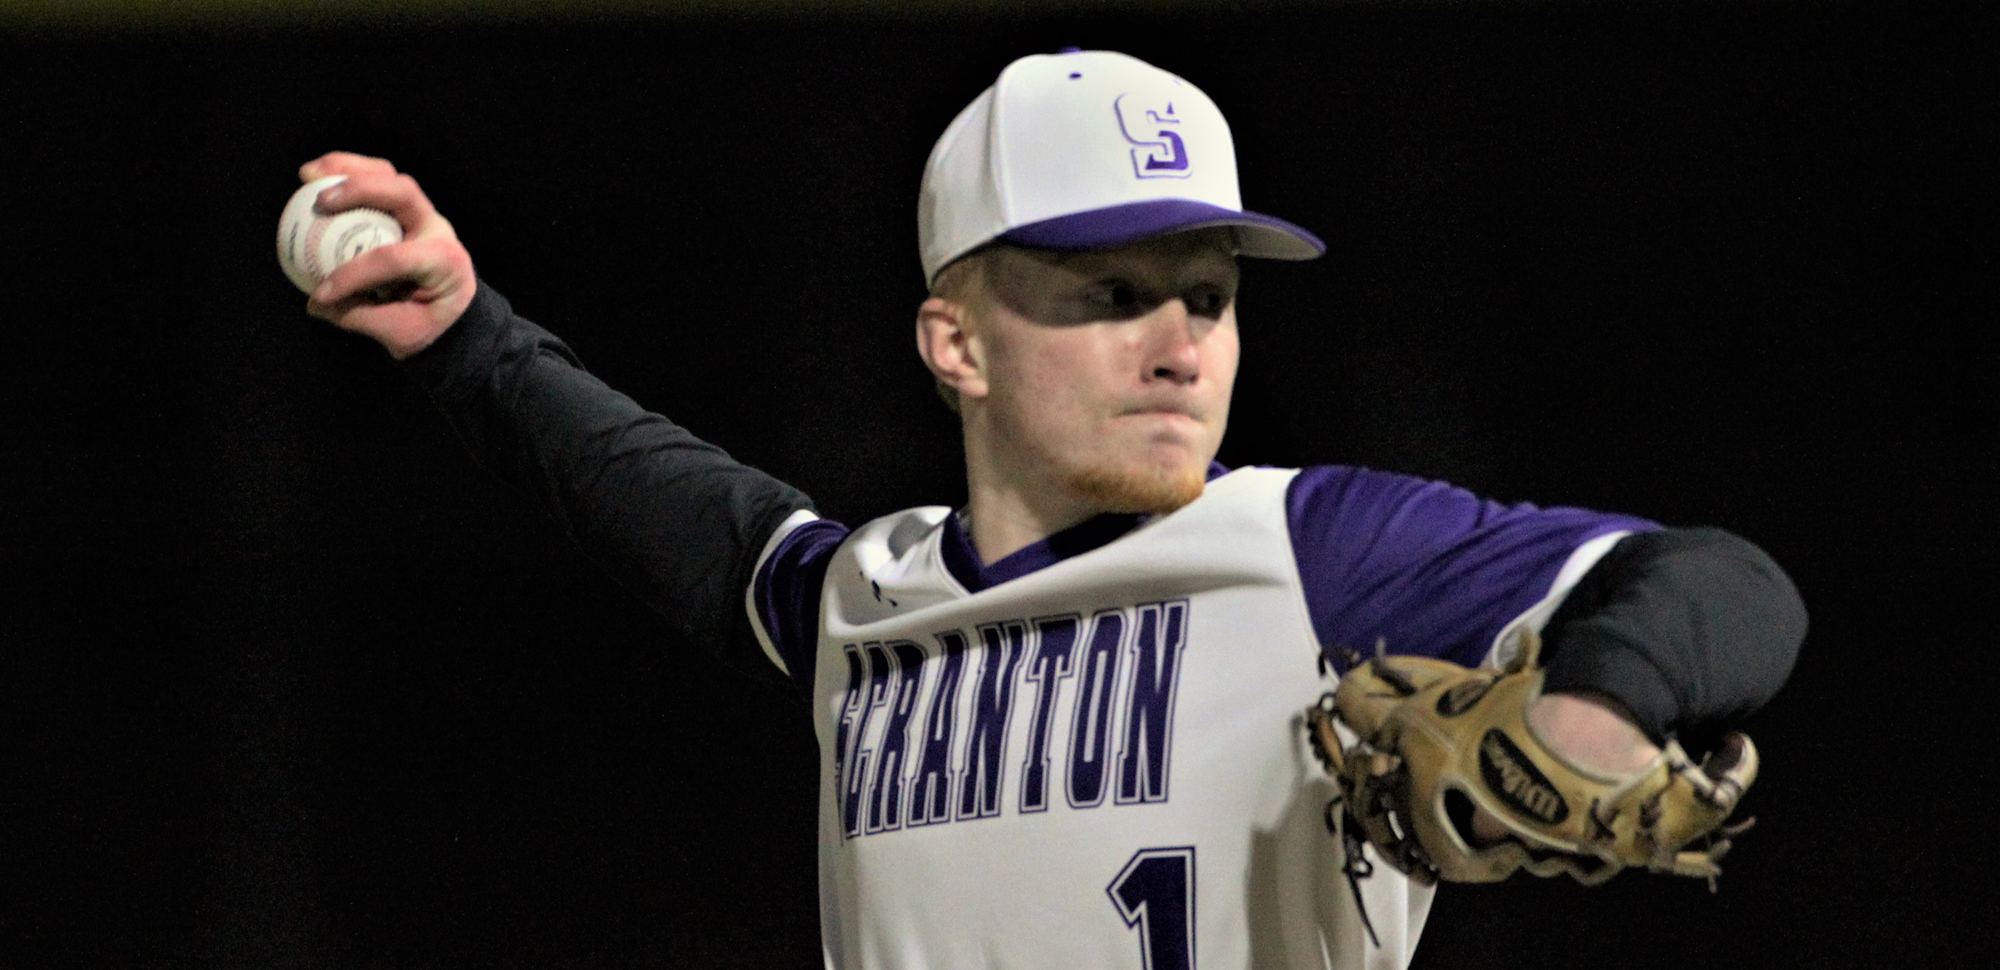 Freshman right-hander Braden Breithaupt fanned four over two scoreless innings of relief on Wednesday vs. Haverford. © Photo by Timothy R. Dougherty / doubleeaglephotography.com